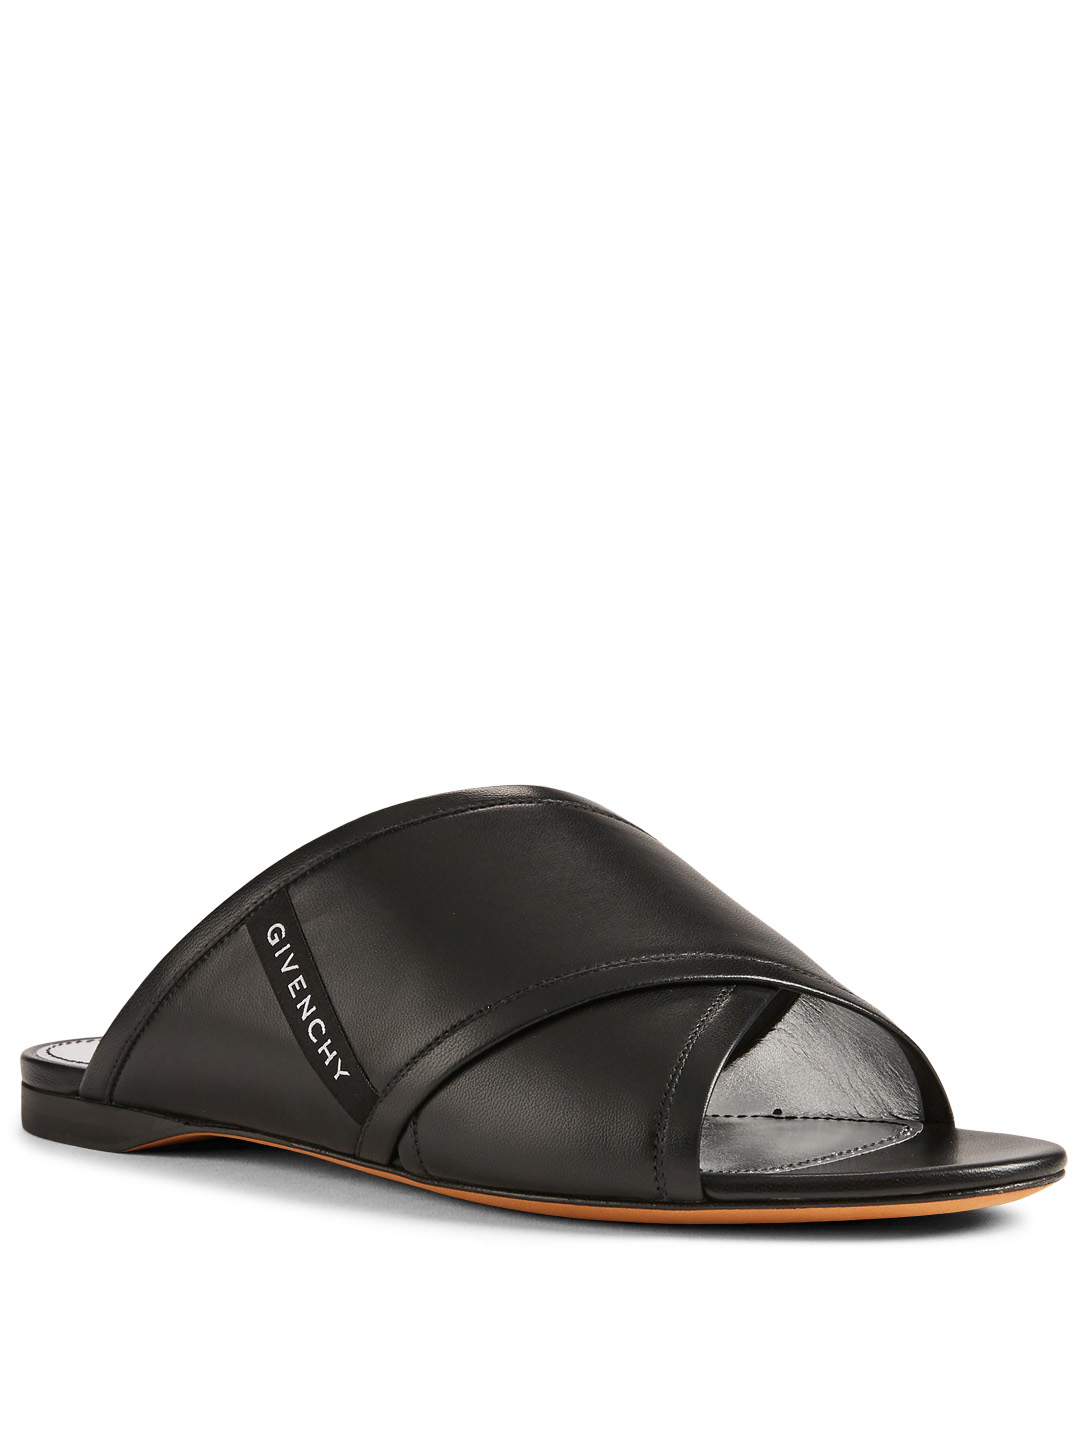 GIVENCHY Rivington Leather Slide Sandals Womens Black